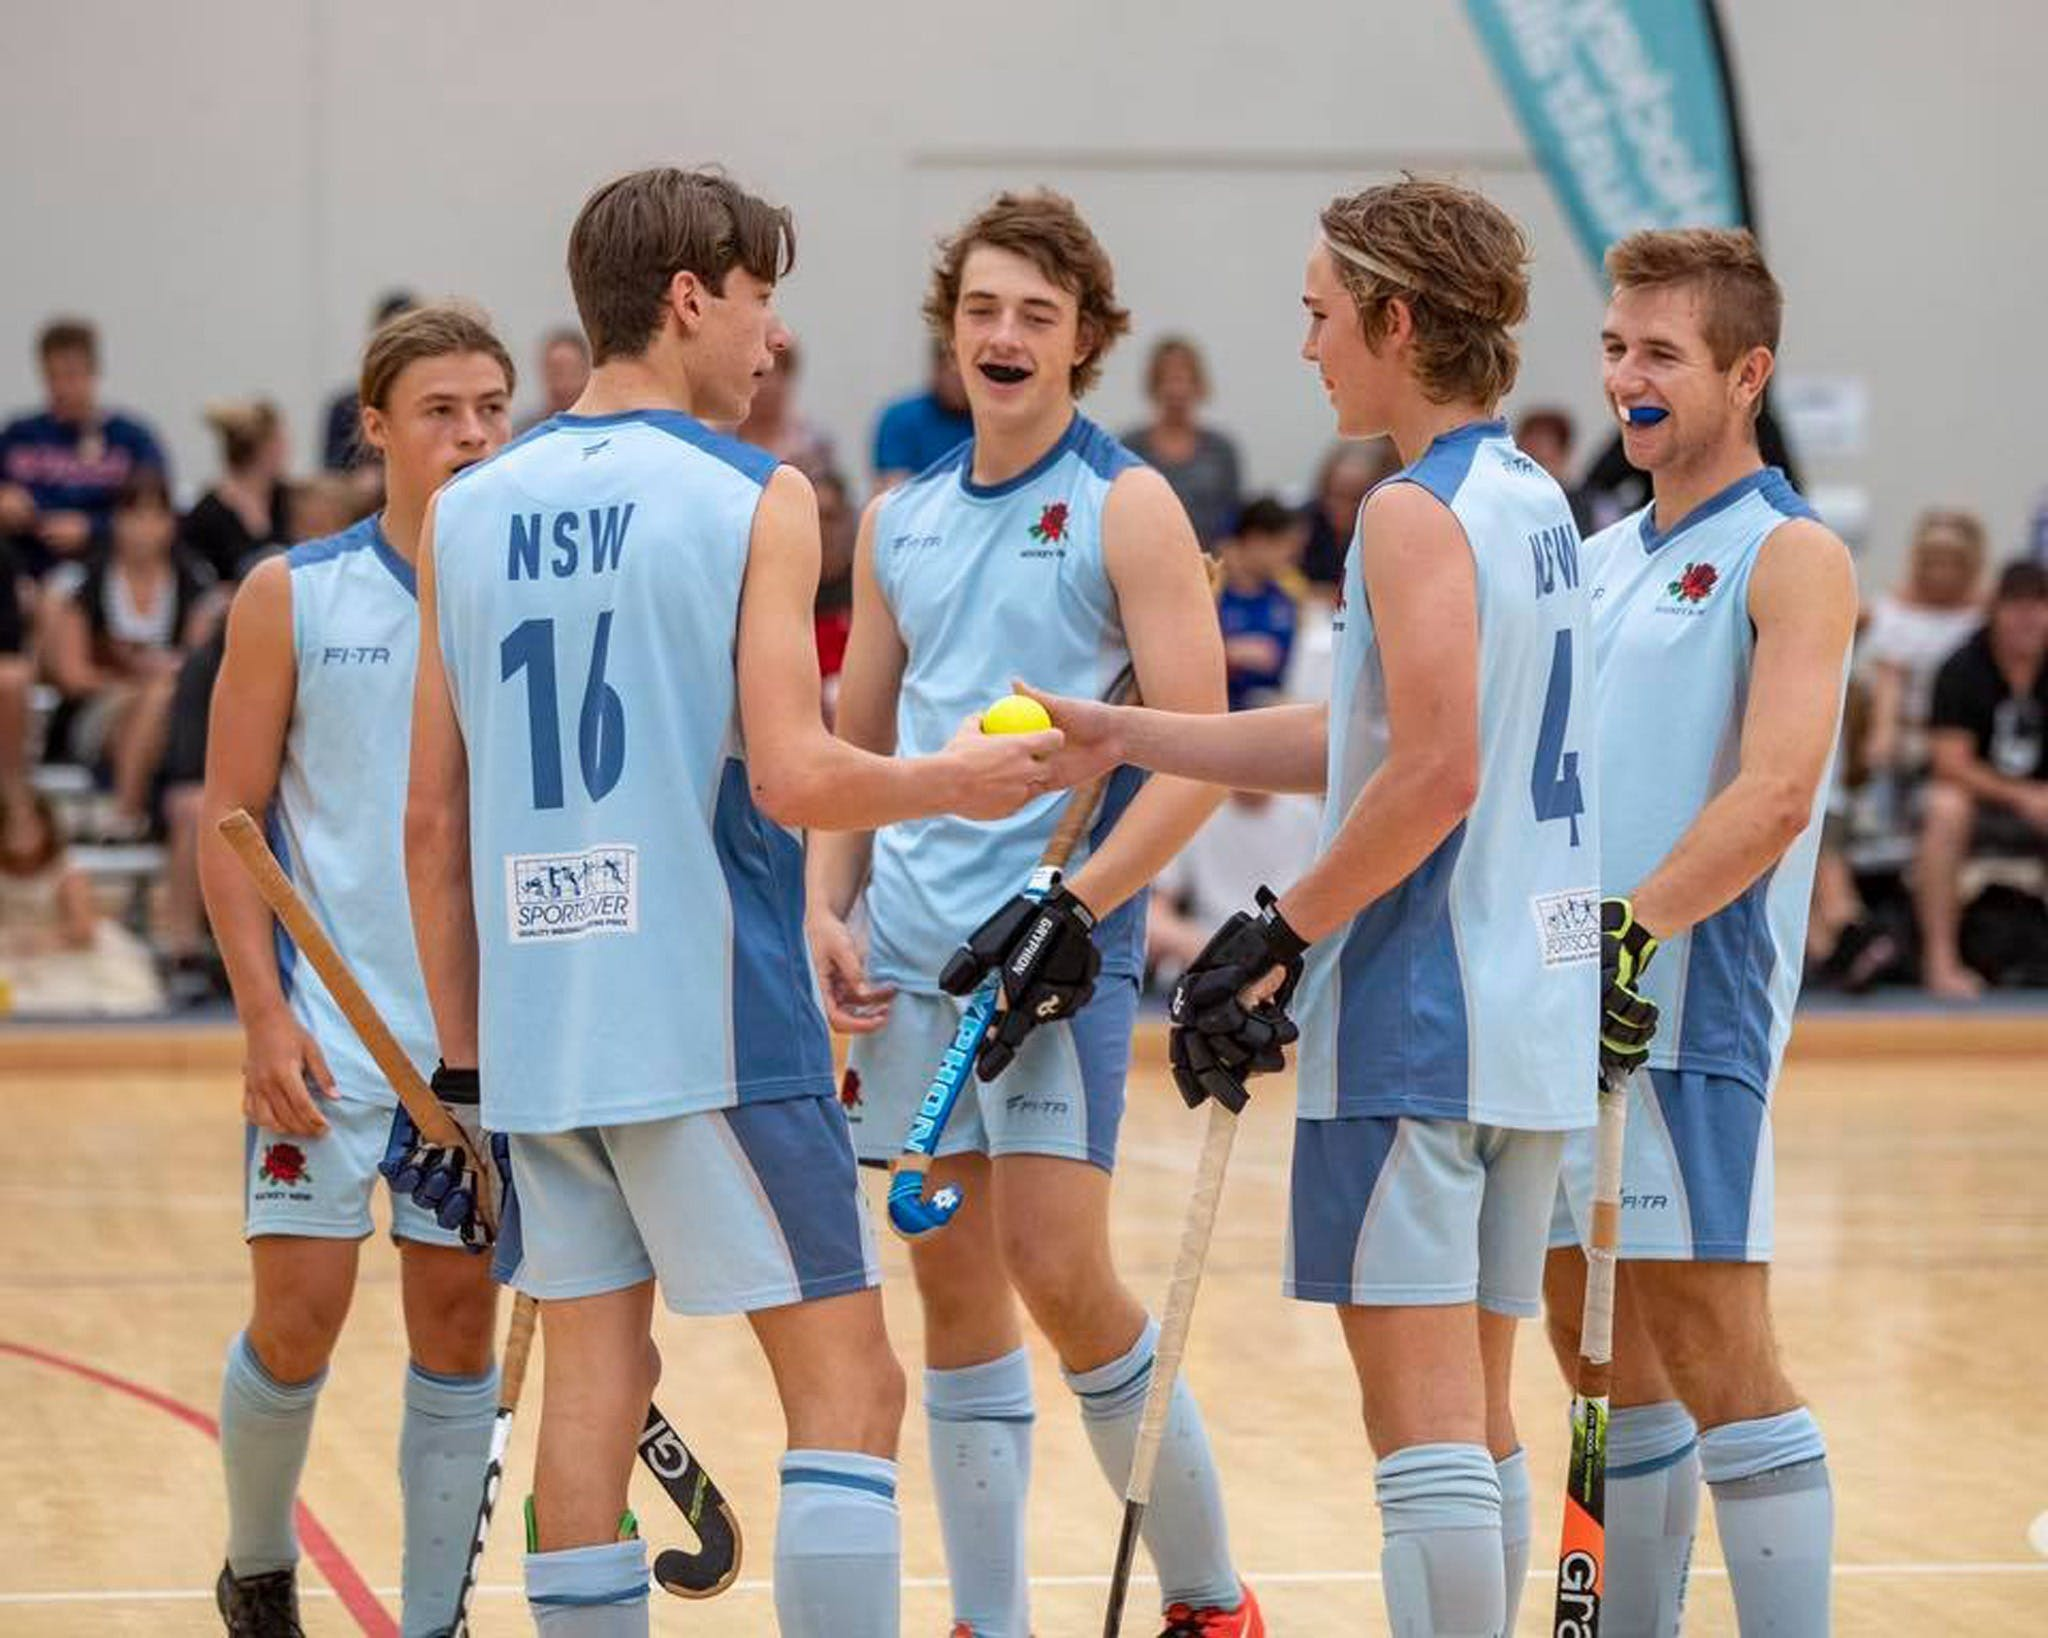 Hockey NSW Indoor State Championship  Open Men - Grafton Accommodation